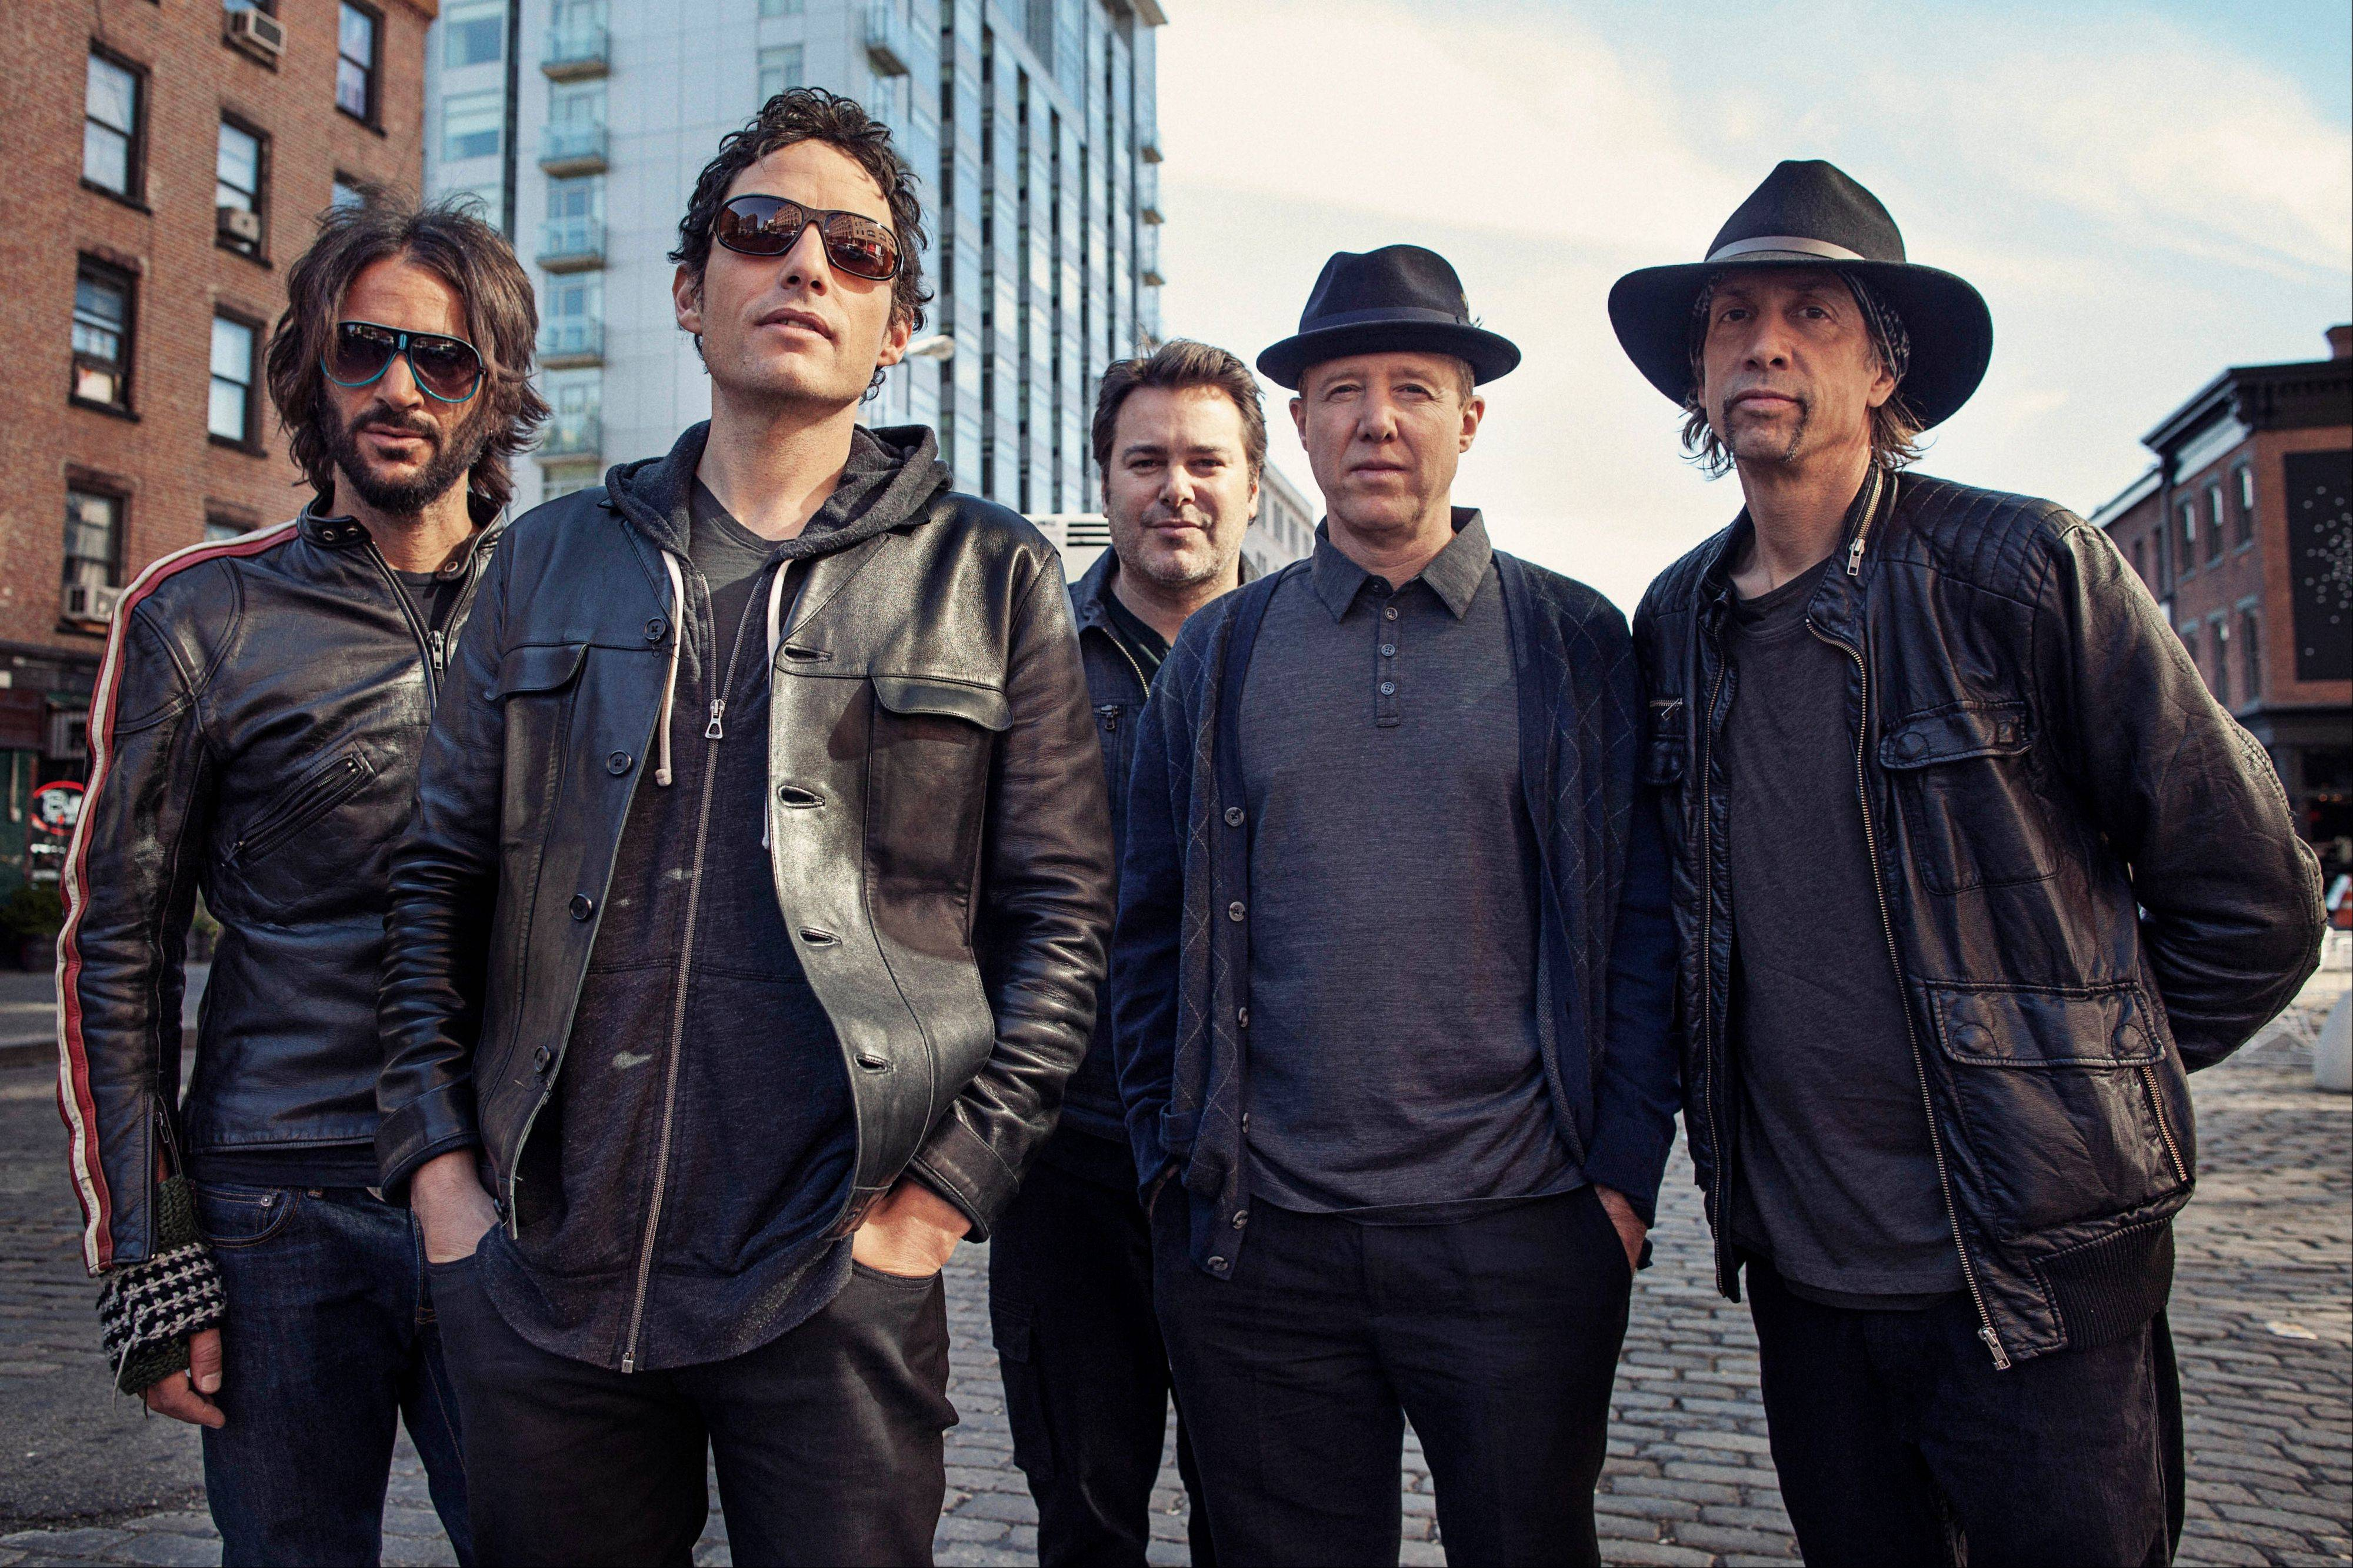 The Wallflowers � Rami Jaffee, left, Jakob Dylan, Greg Richling, Jack Irons and Stuart Mathis perform at the Park West Friday. a new album this month titled, �Glad All Over.� (Photo by Victoria Will/Invision/AP Images)